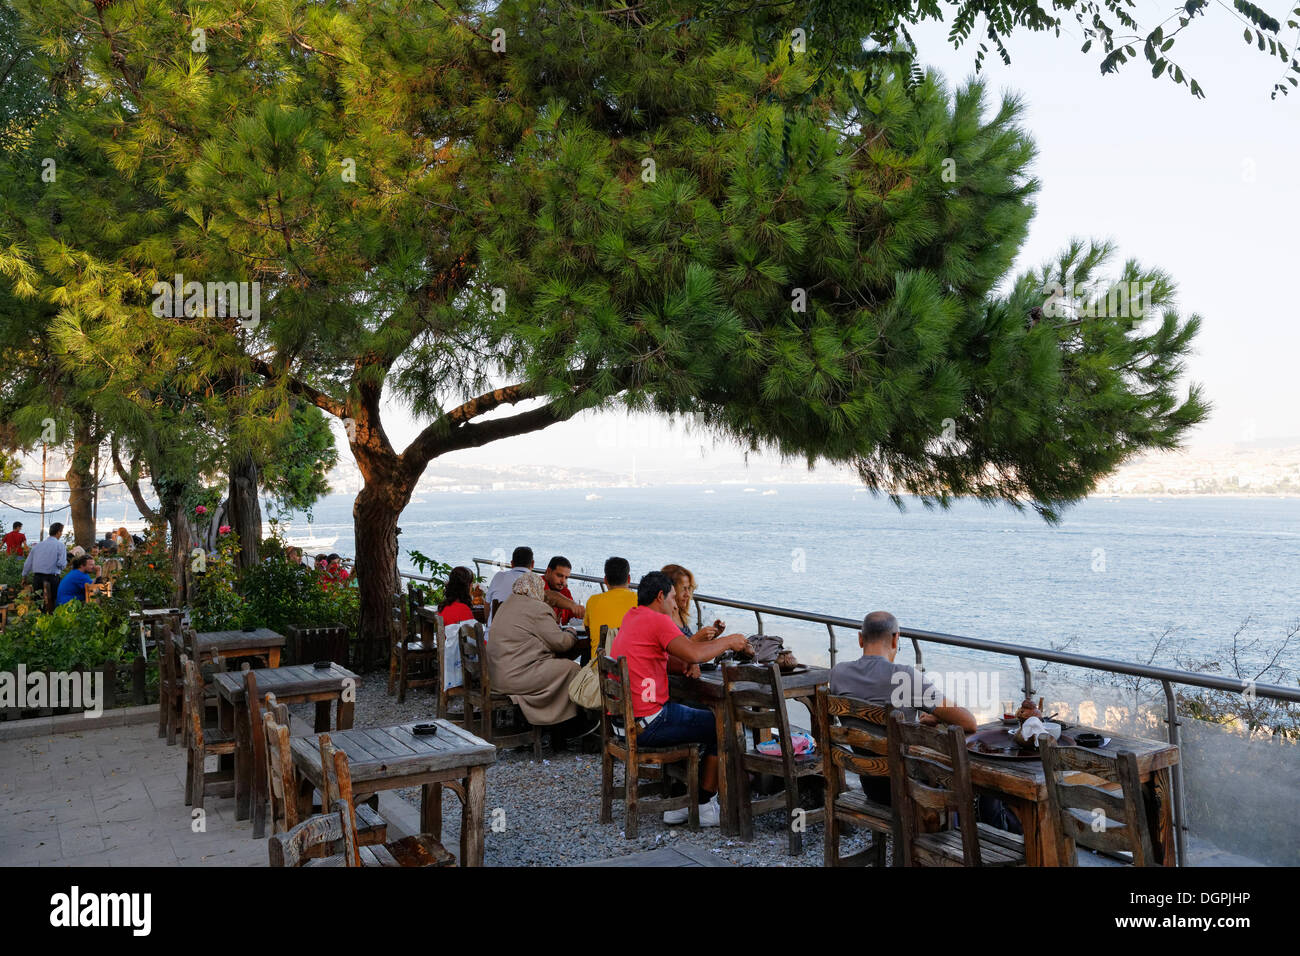 Tea garden in Gülhane-Park overlooking the Bosphorus ...